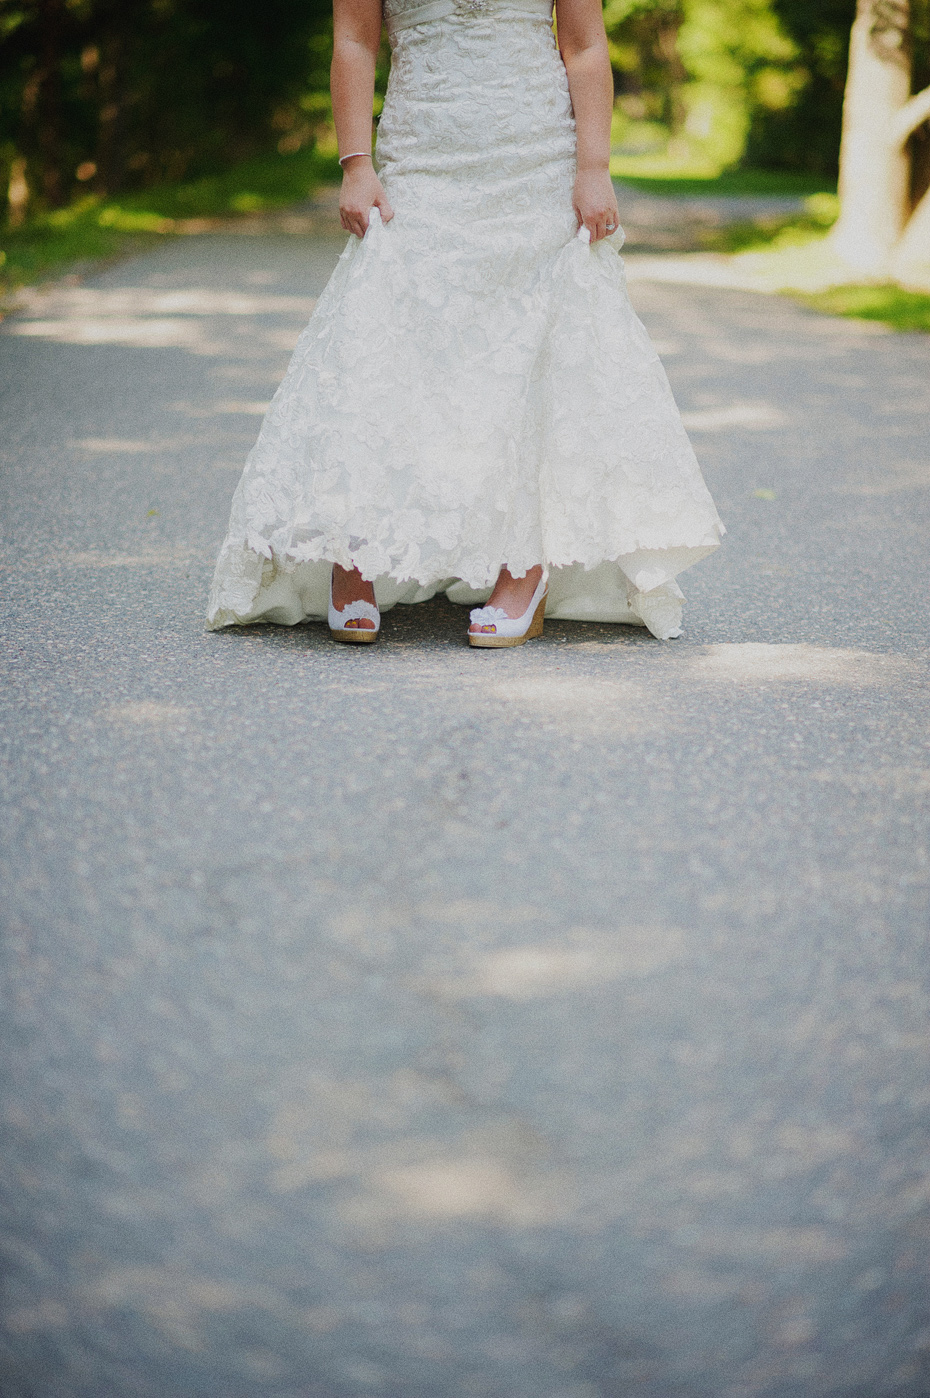 Melanie & Justin Wedding - Rothesay, NB